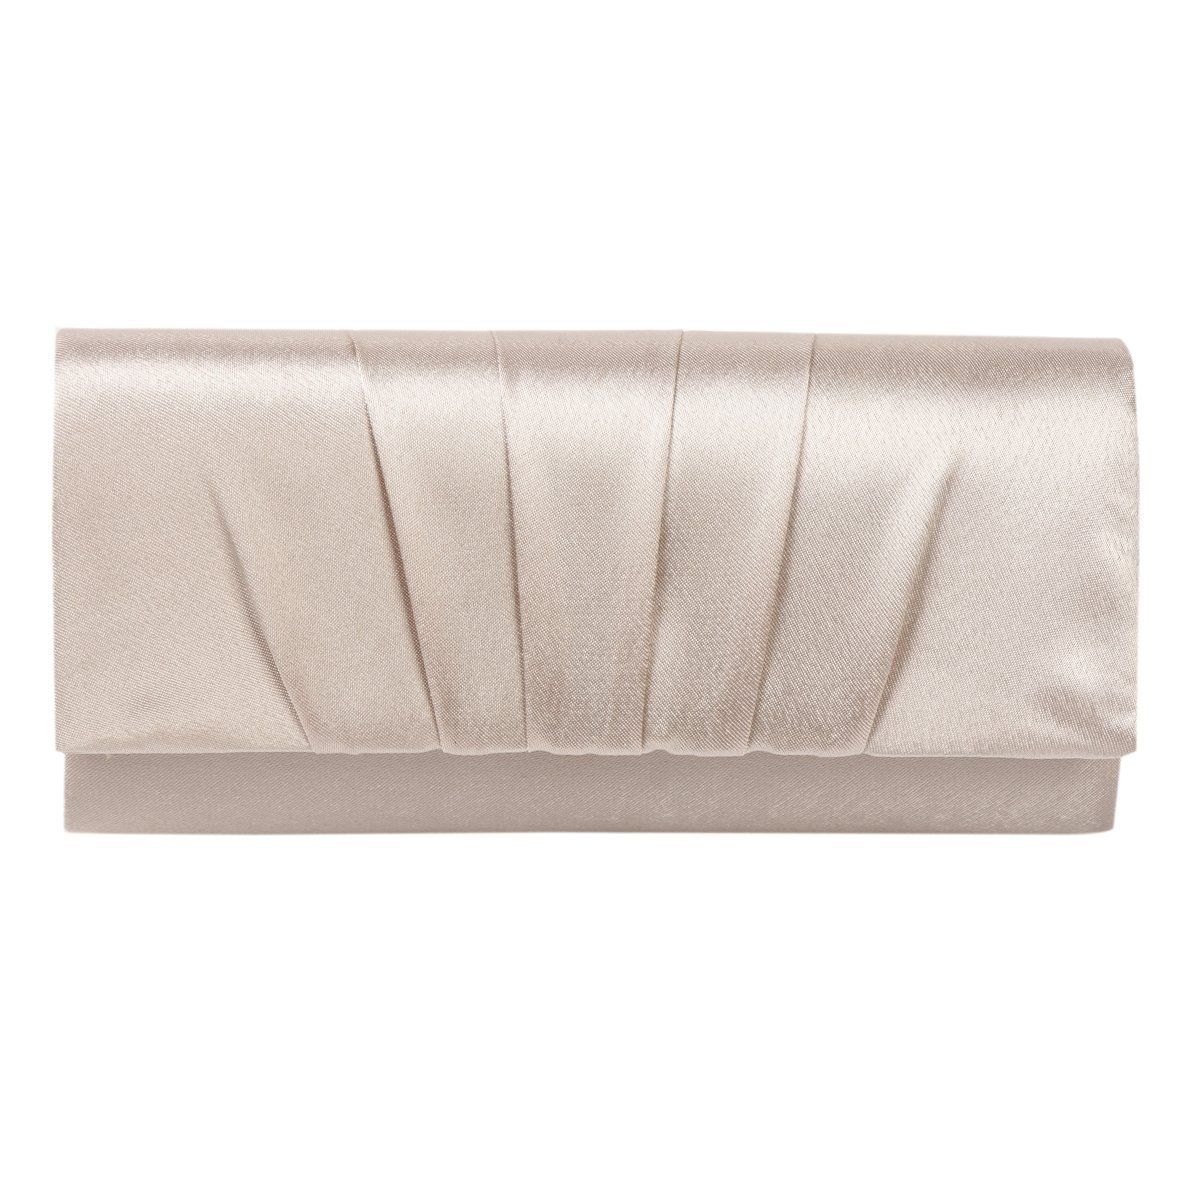 7bd705140bae Damara Womens Satin Pleated Clutch Bag Wedding Bridal Prom Evening ...